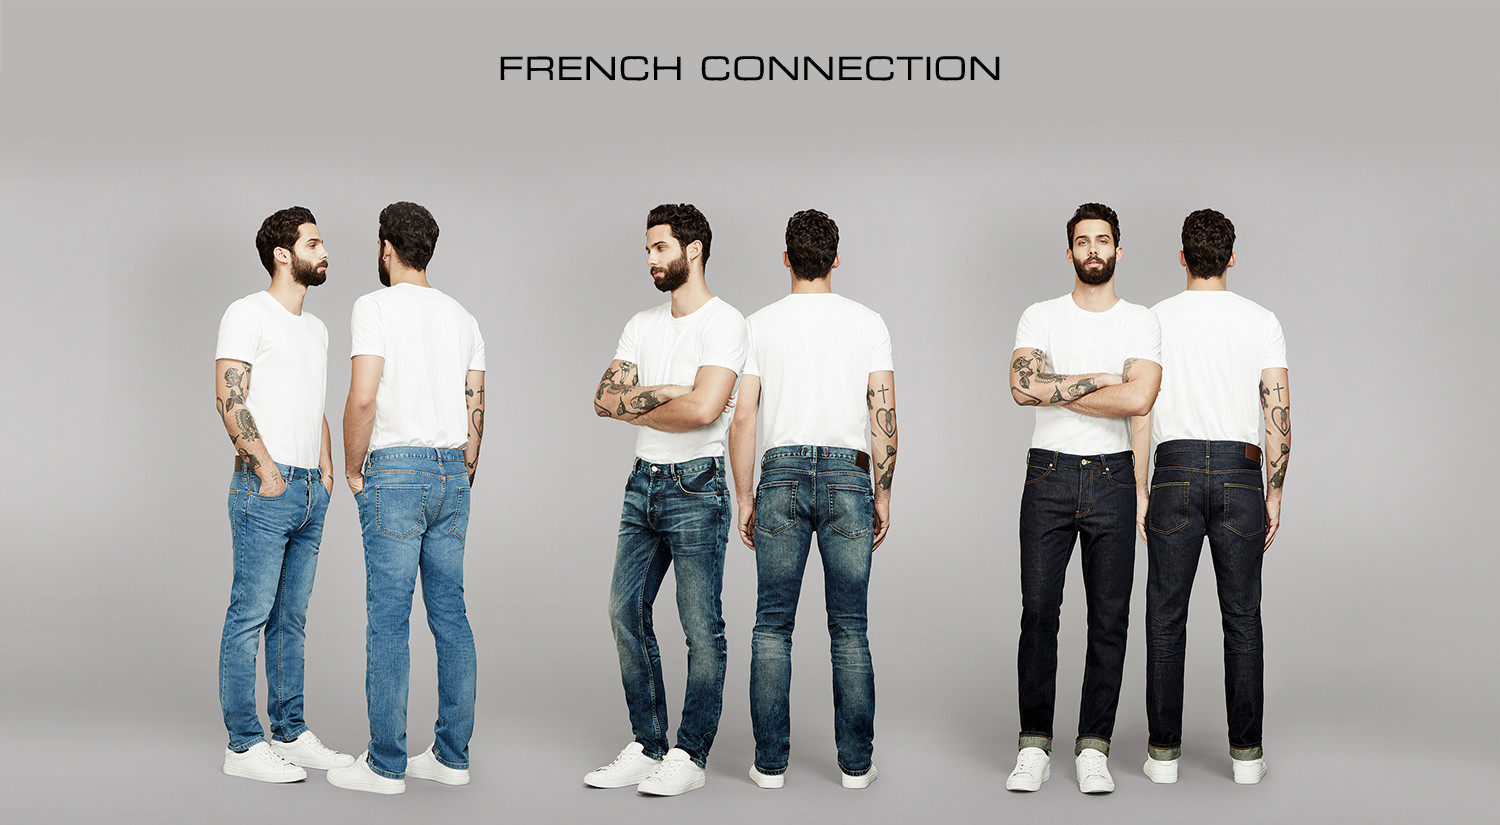 Jimmy For French Connection